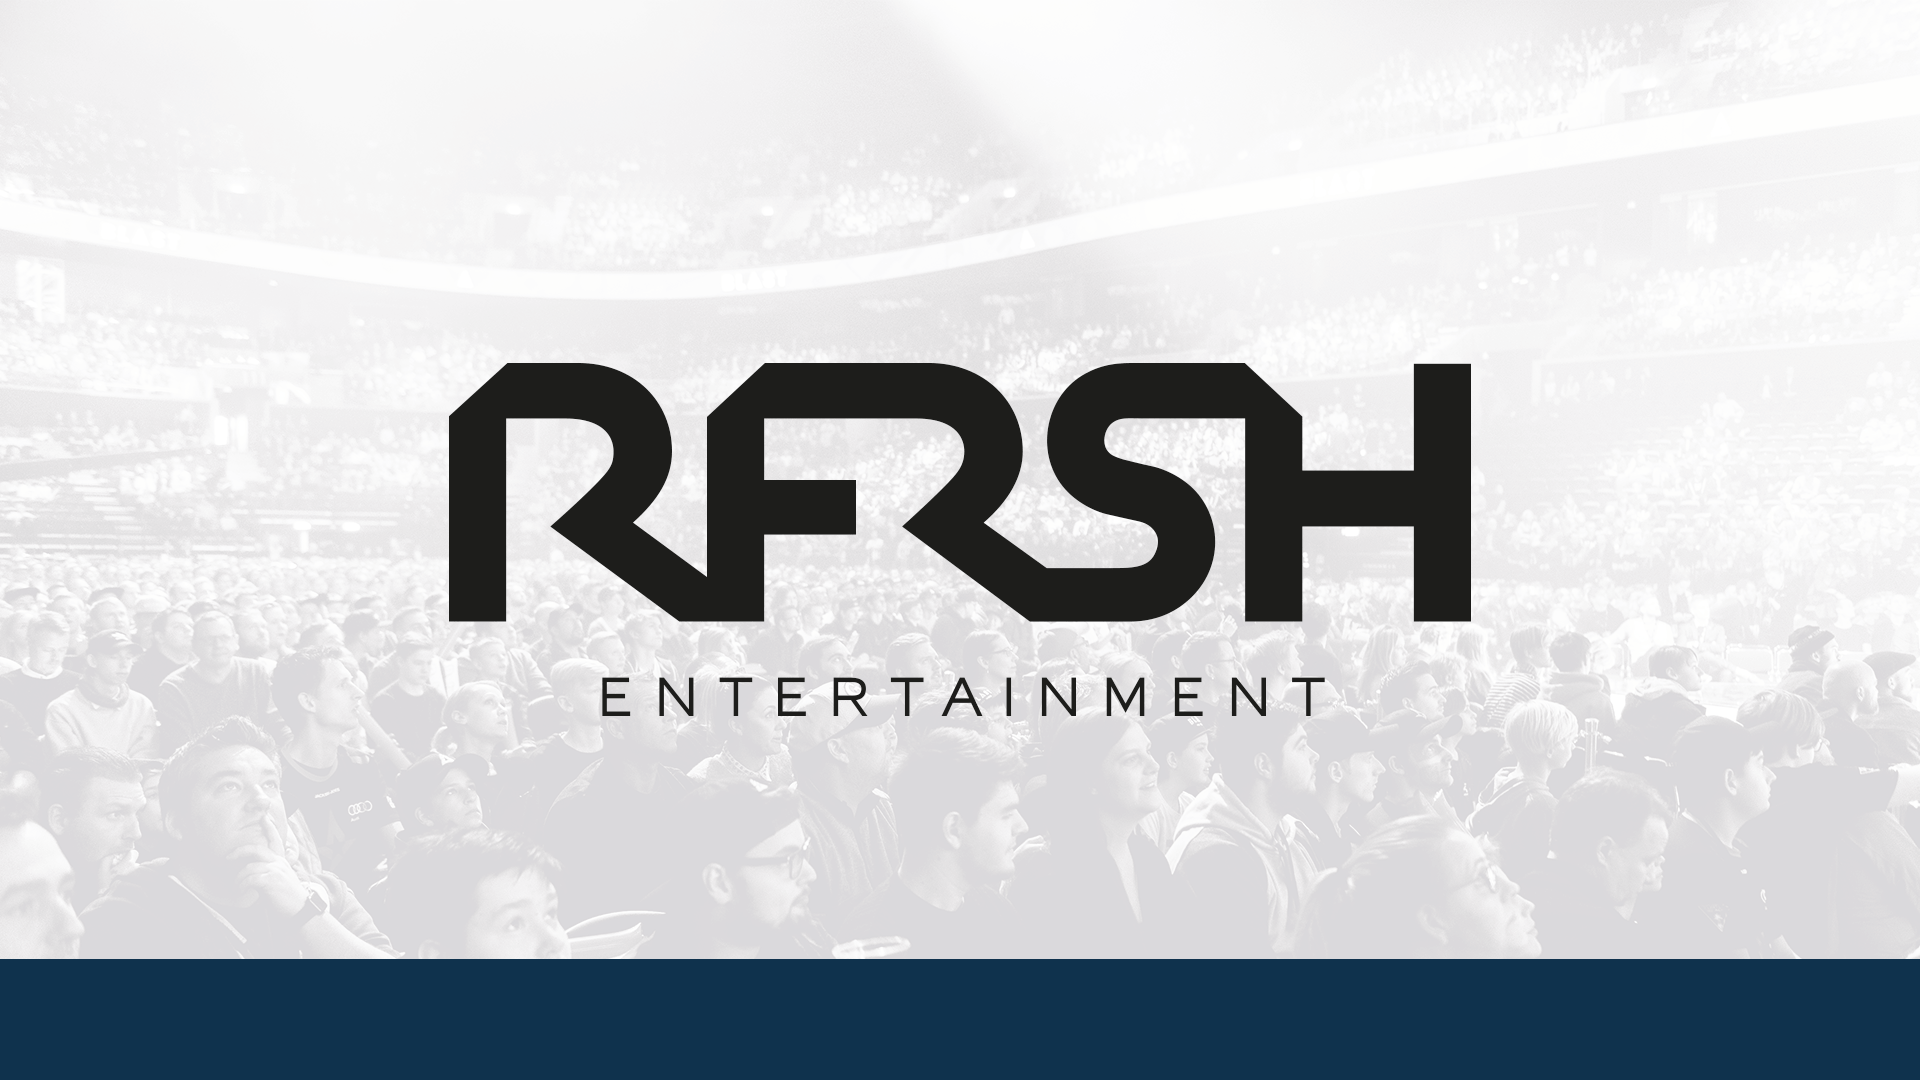 RFRSH Entertainment raises $10.5 million funding.